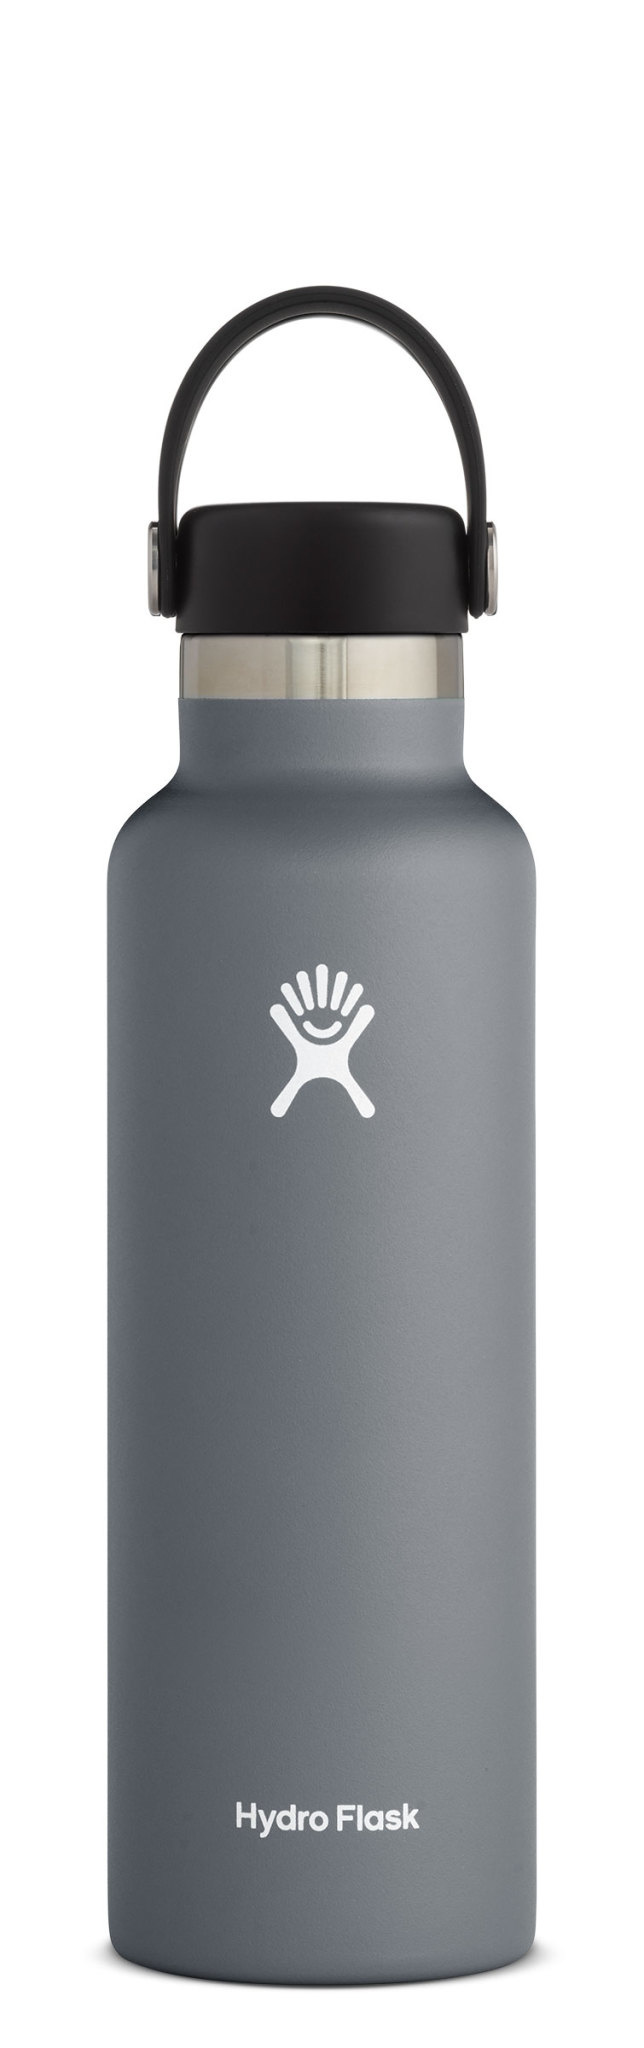 Hydro Flask 21oz Standard Mouth with Standard Flex Cap-9